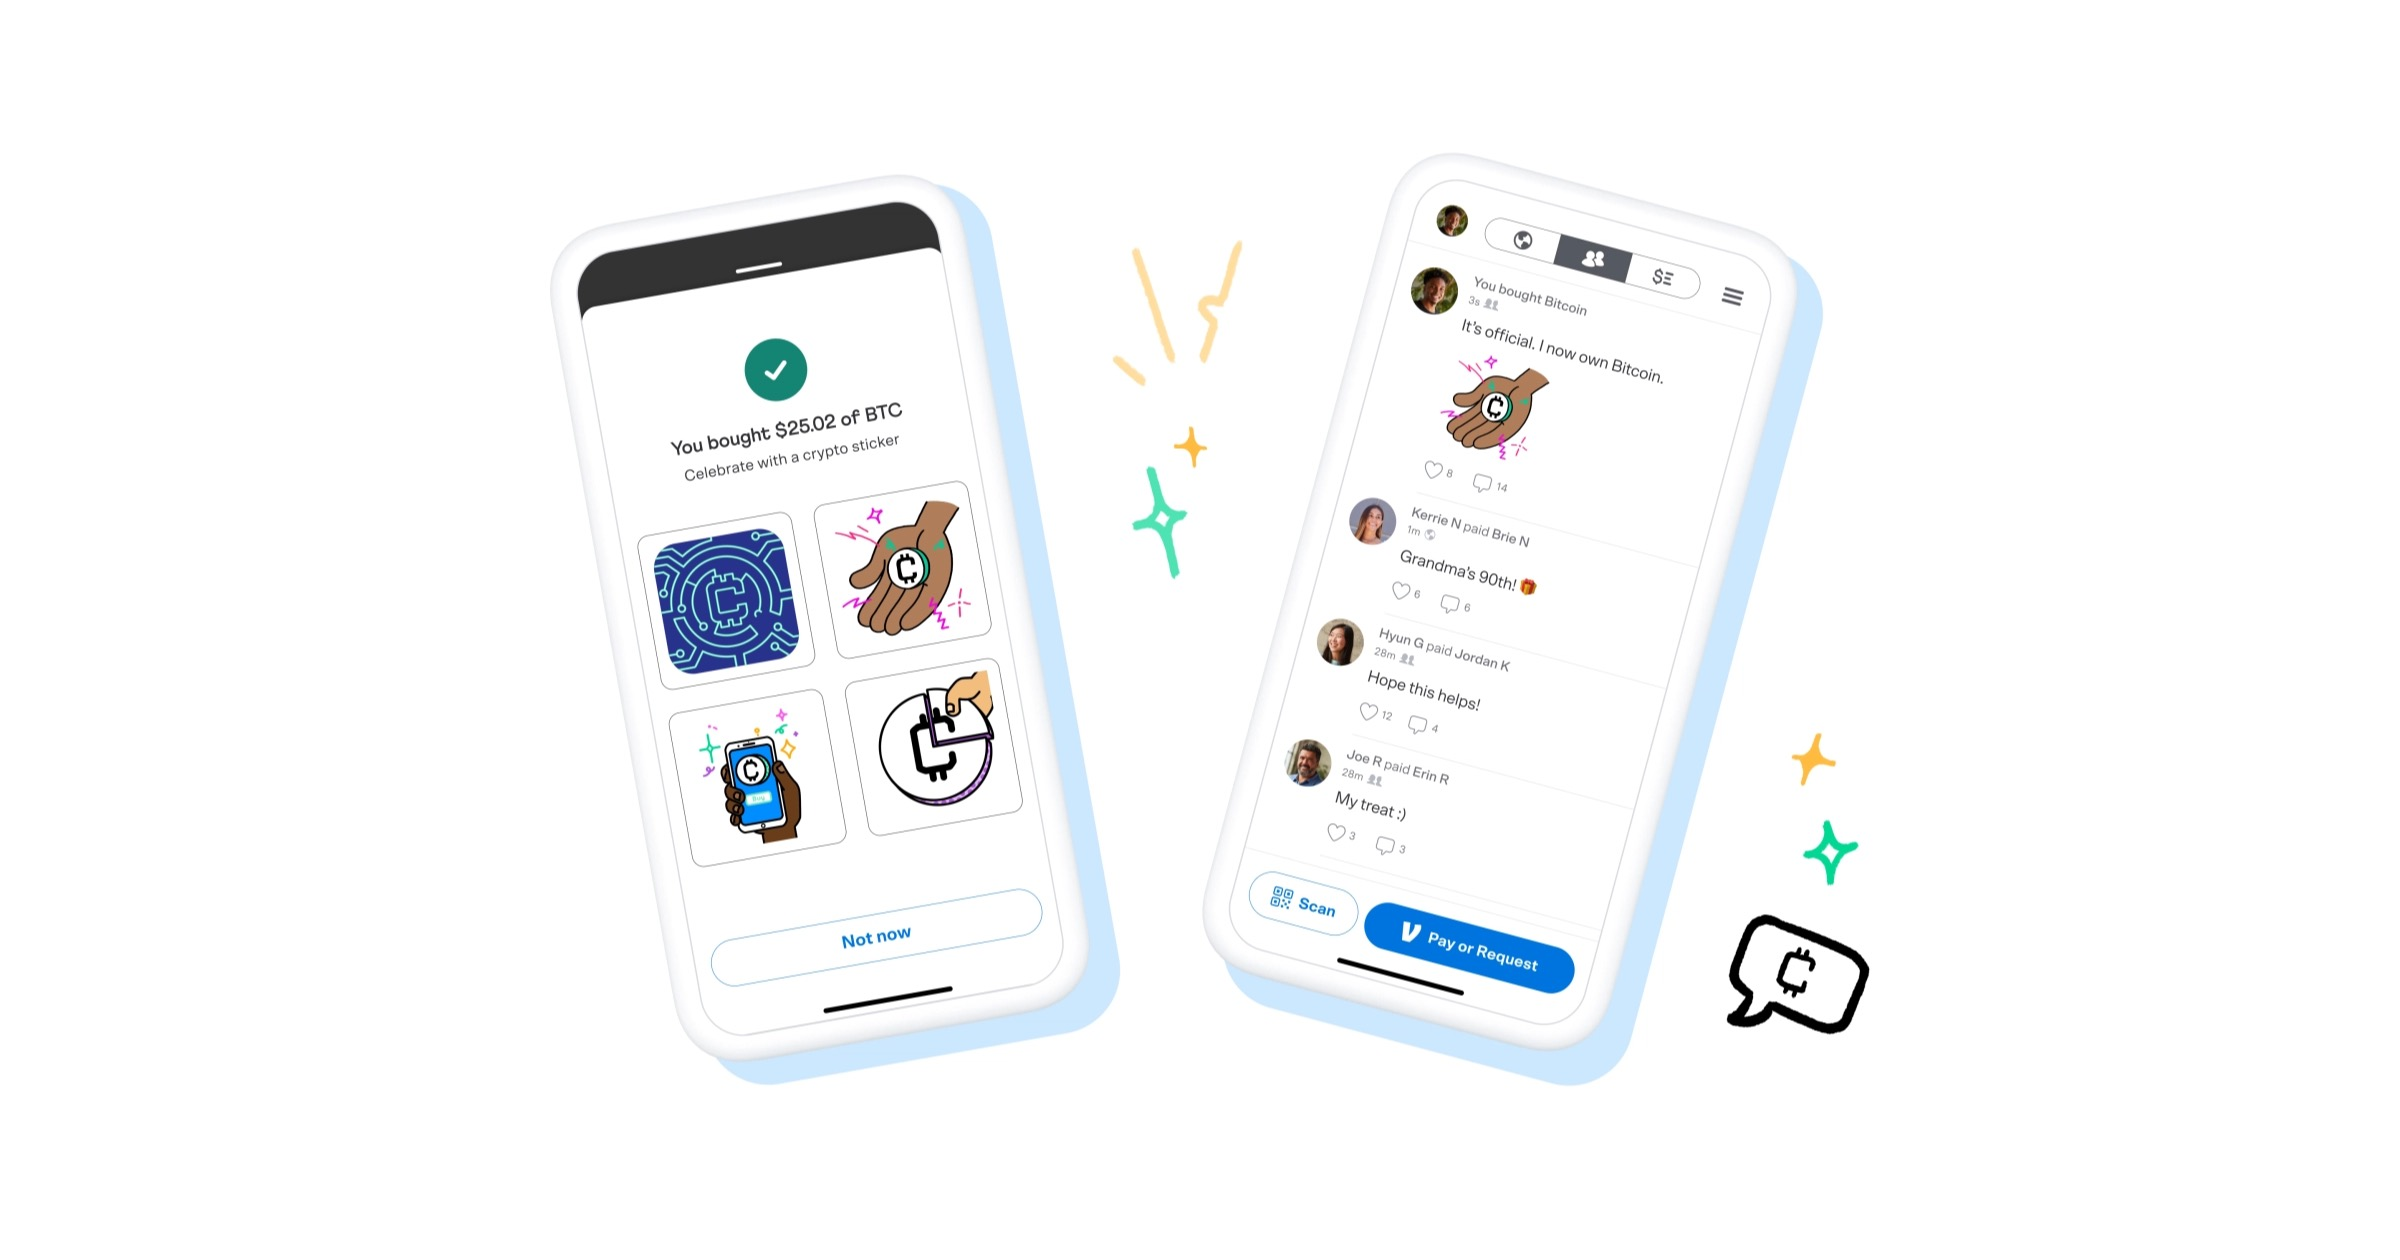 Cryptocurrency in Venmo